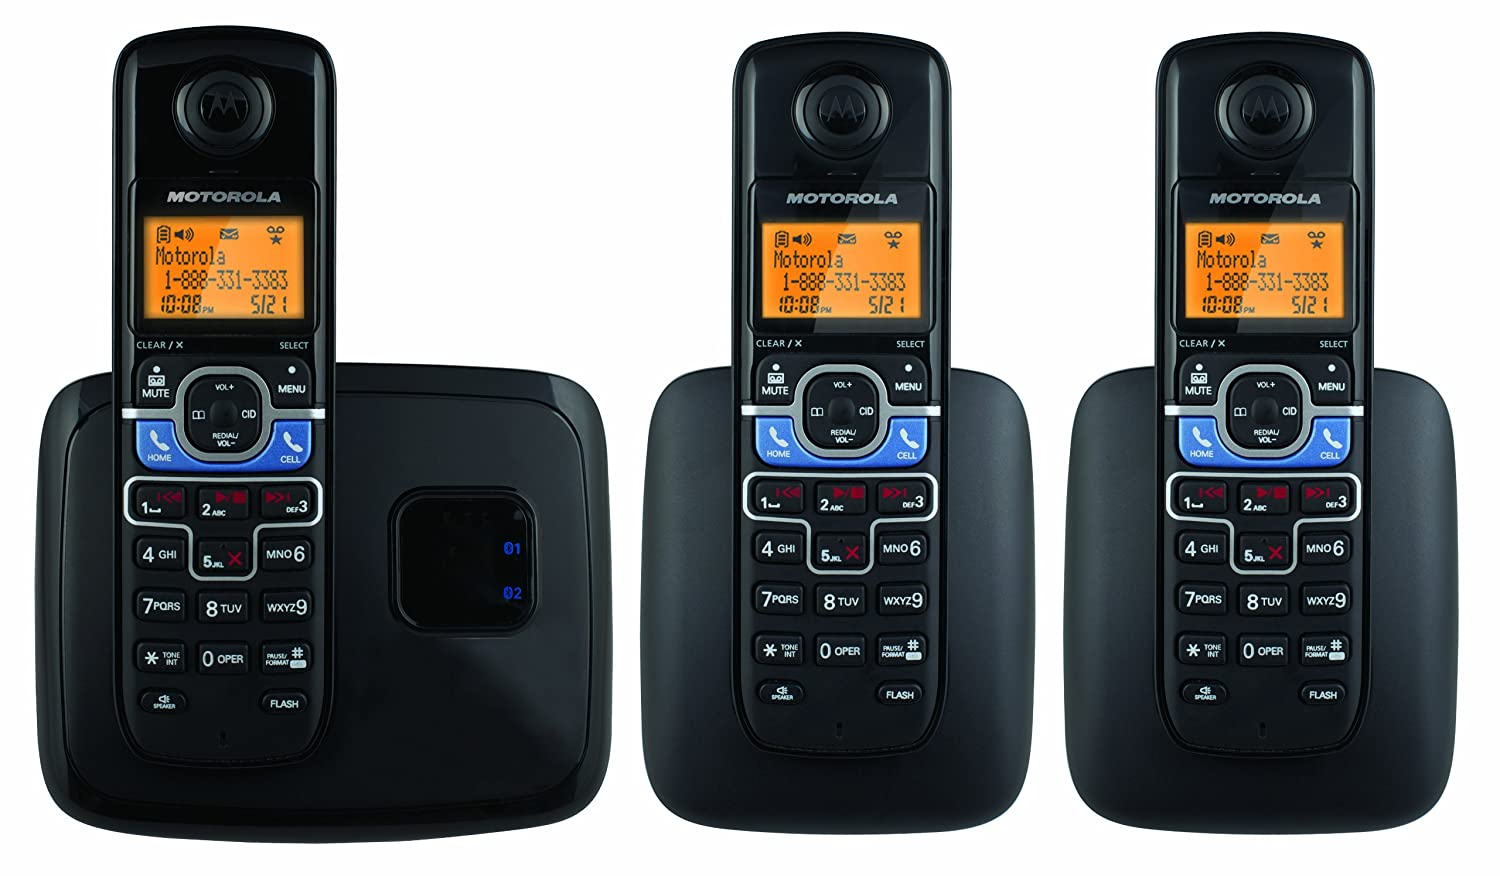 Motorola-DECT-6-0-Cordless-Phone-with-3-Handsets-Digital-Answering-System-and-Mobile-Bluetooth-Linking-L703BT